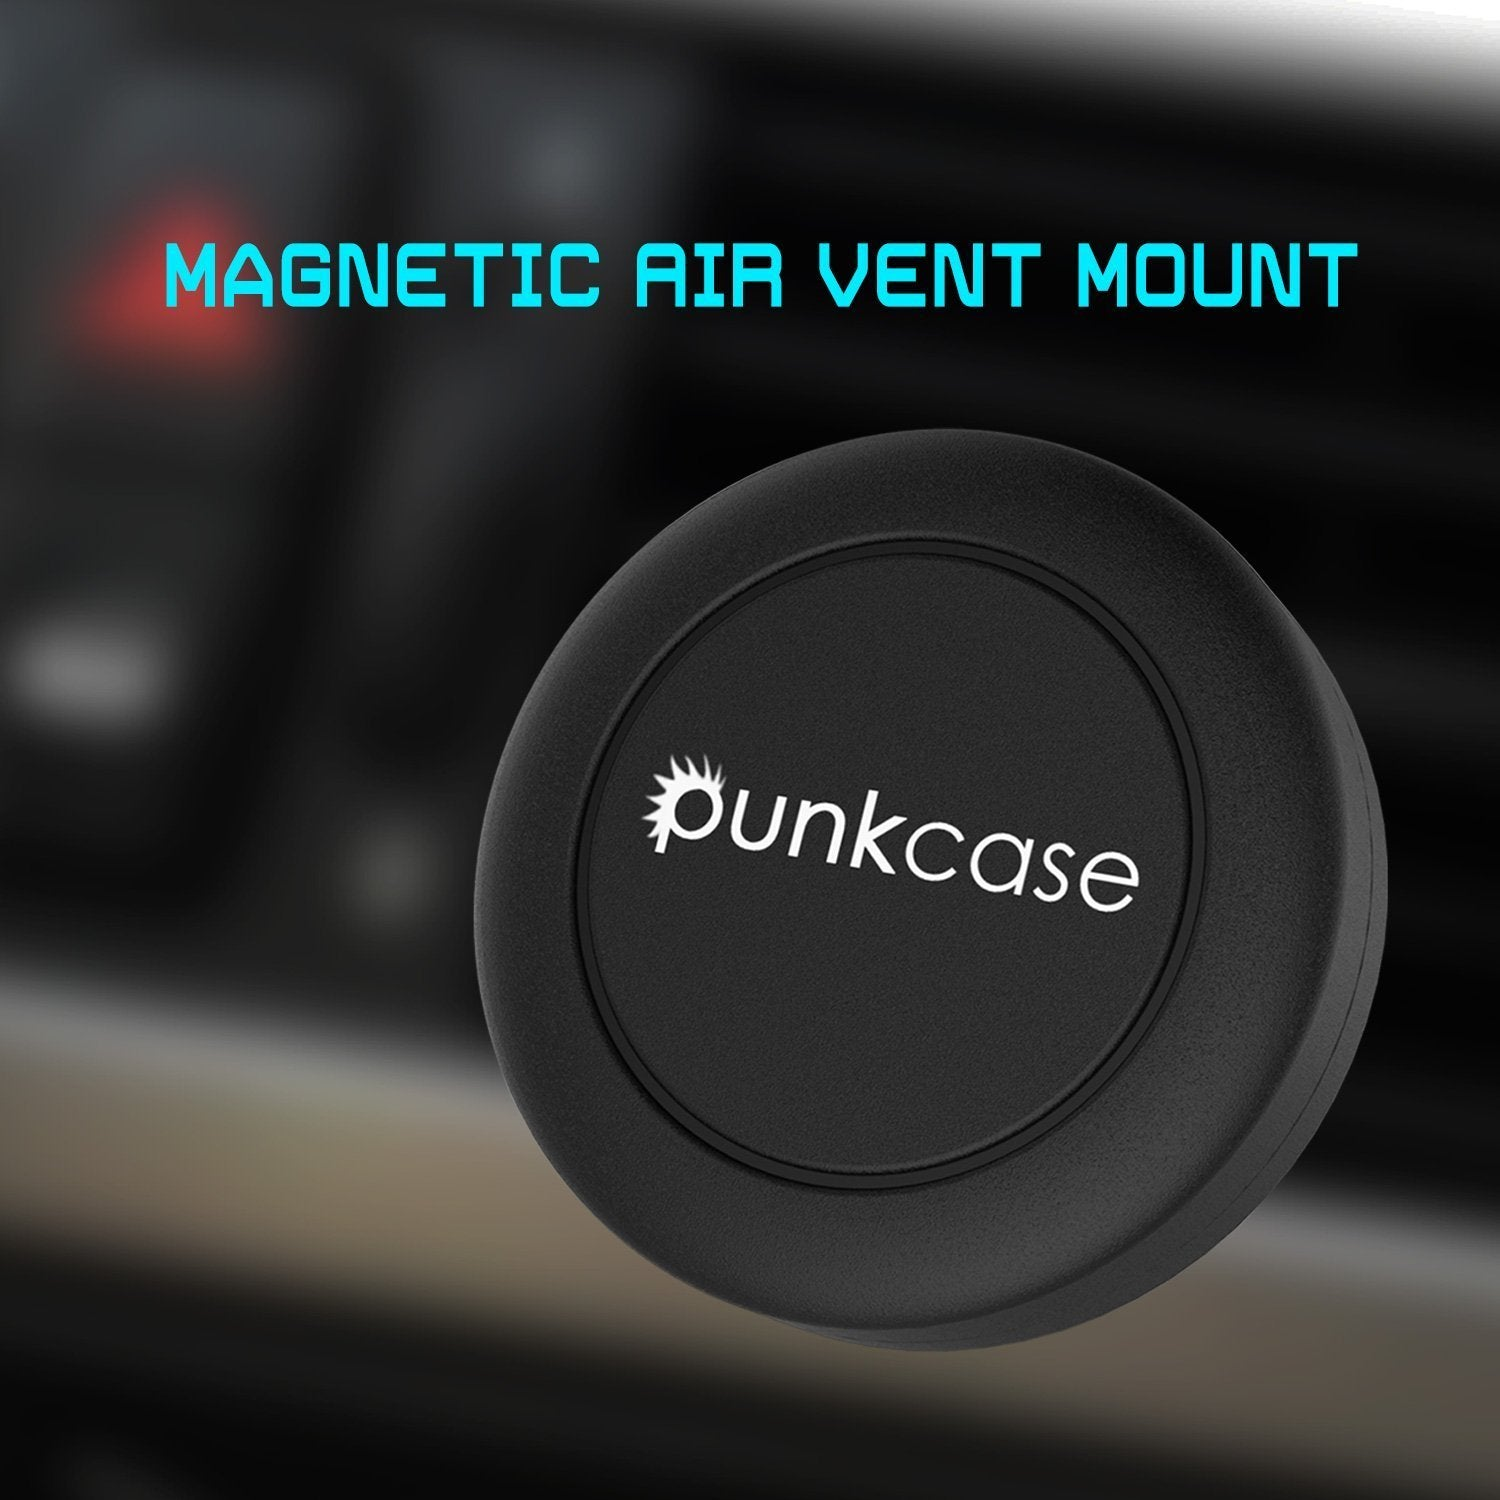 Punkcase Force 2 Magnetic Air Vent Mount, Universal Car Cellphone Holder for all Smartphones, Suitable for Horizontal & Vertical Vents, Strong & Safe to use Magnets (BLACK) - PunkCase NZ